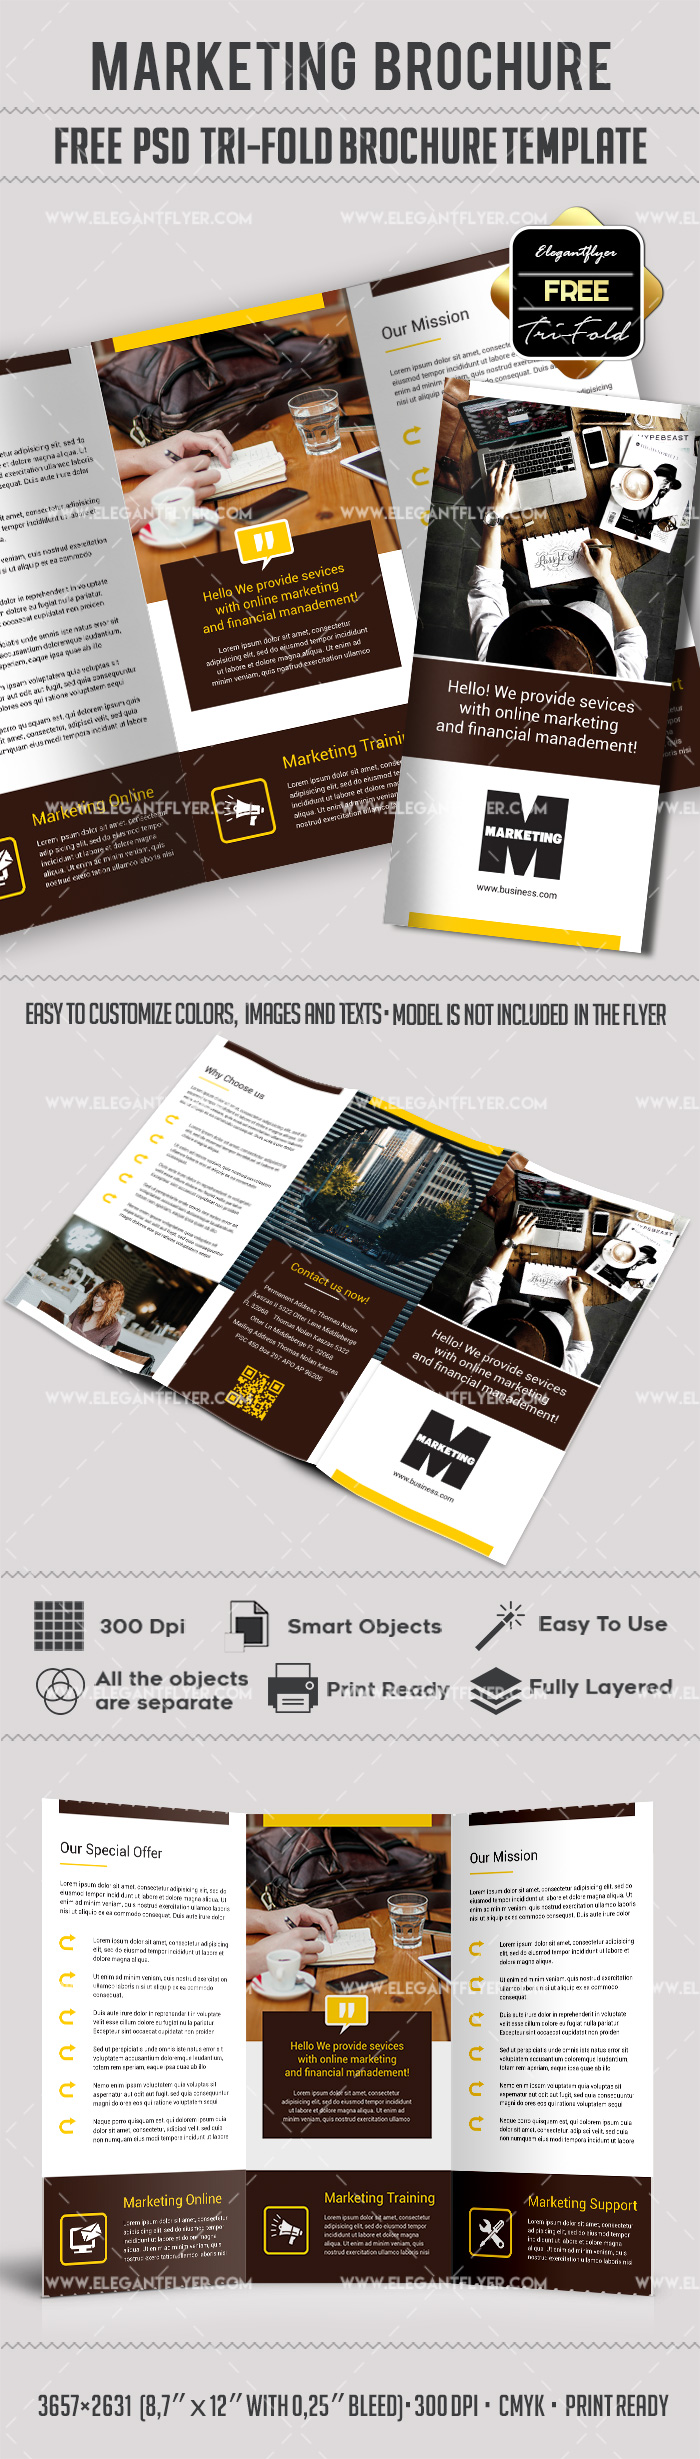 Marketing free tri fold psd brochure template by for Three fold brochure template free download